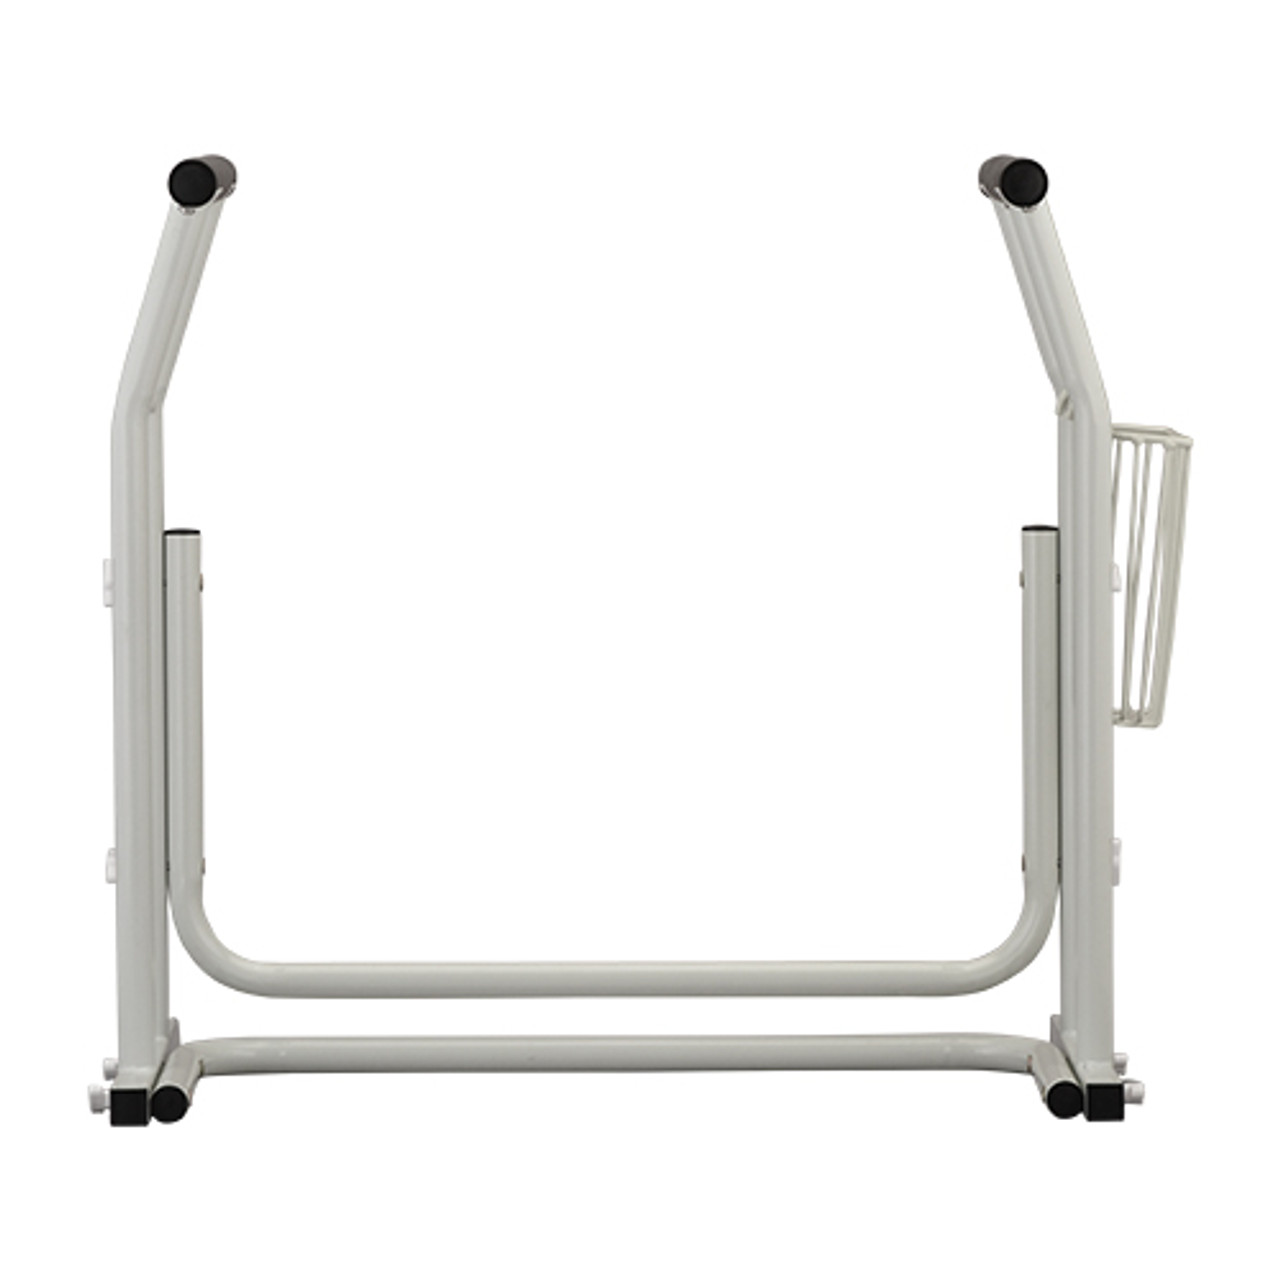 Toilet Safety Frame front view